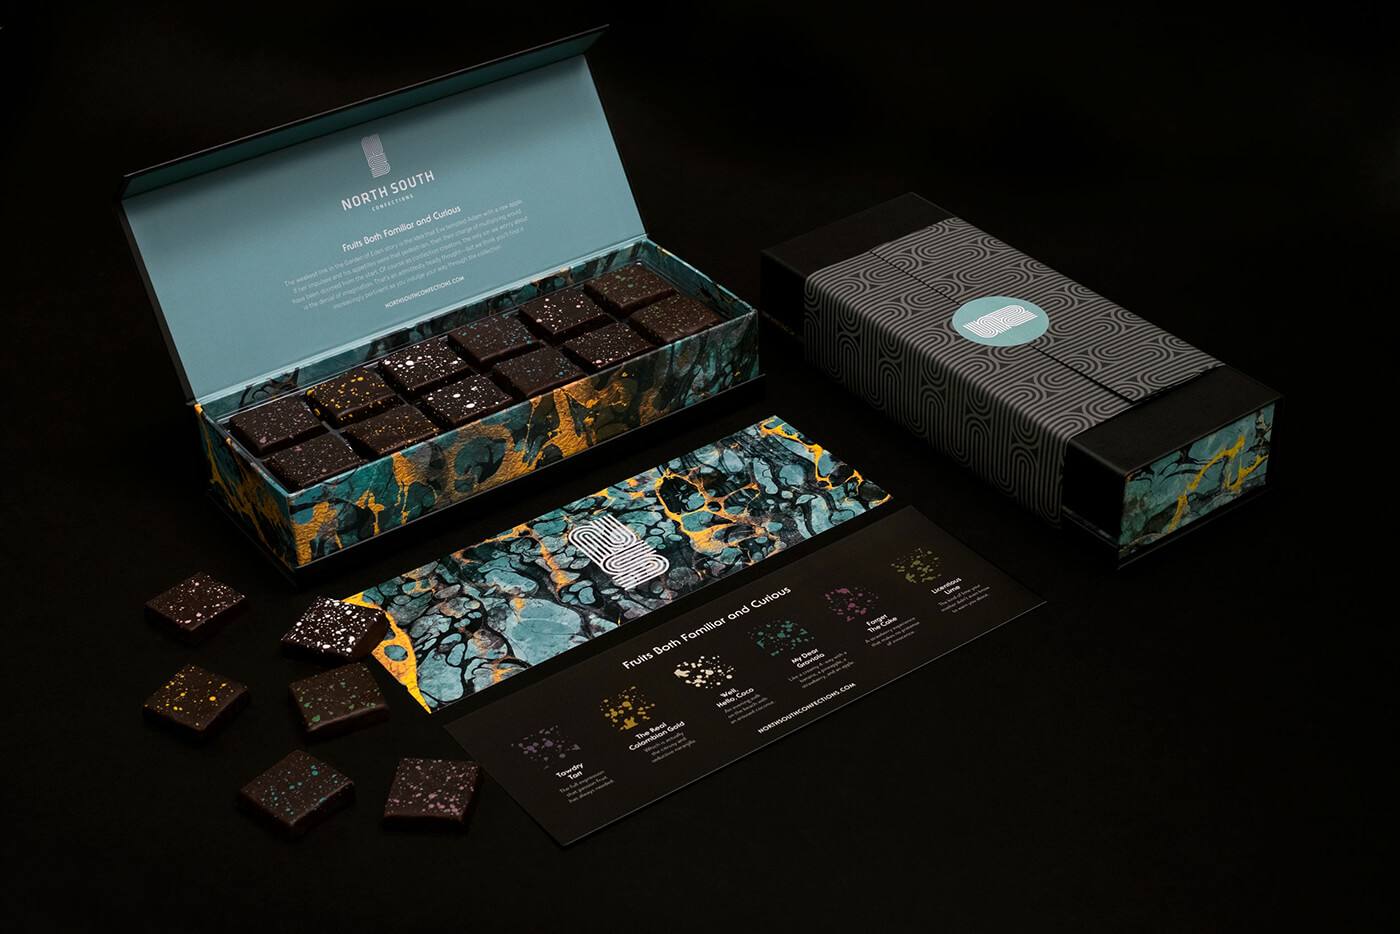 North-South chocolates as a gift